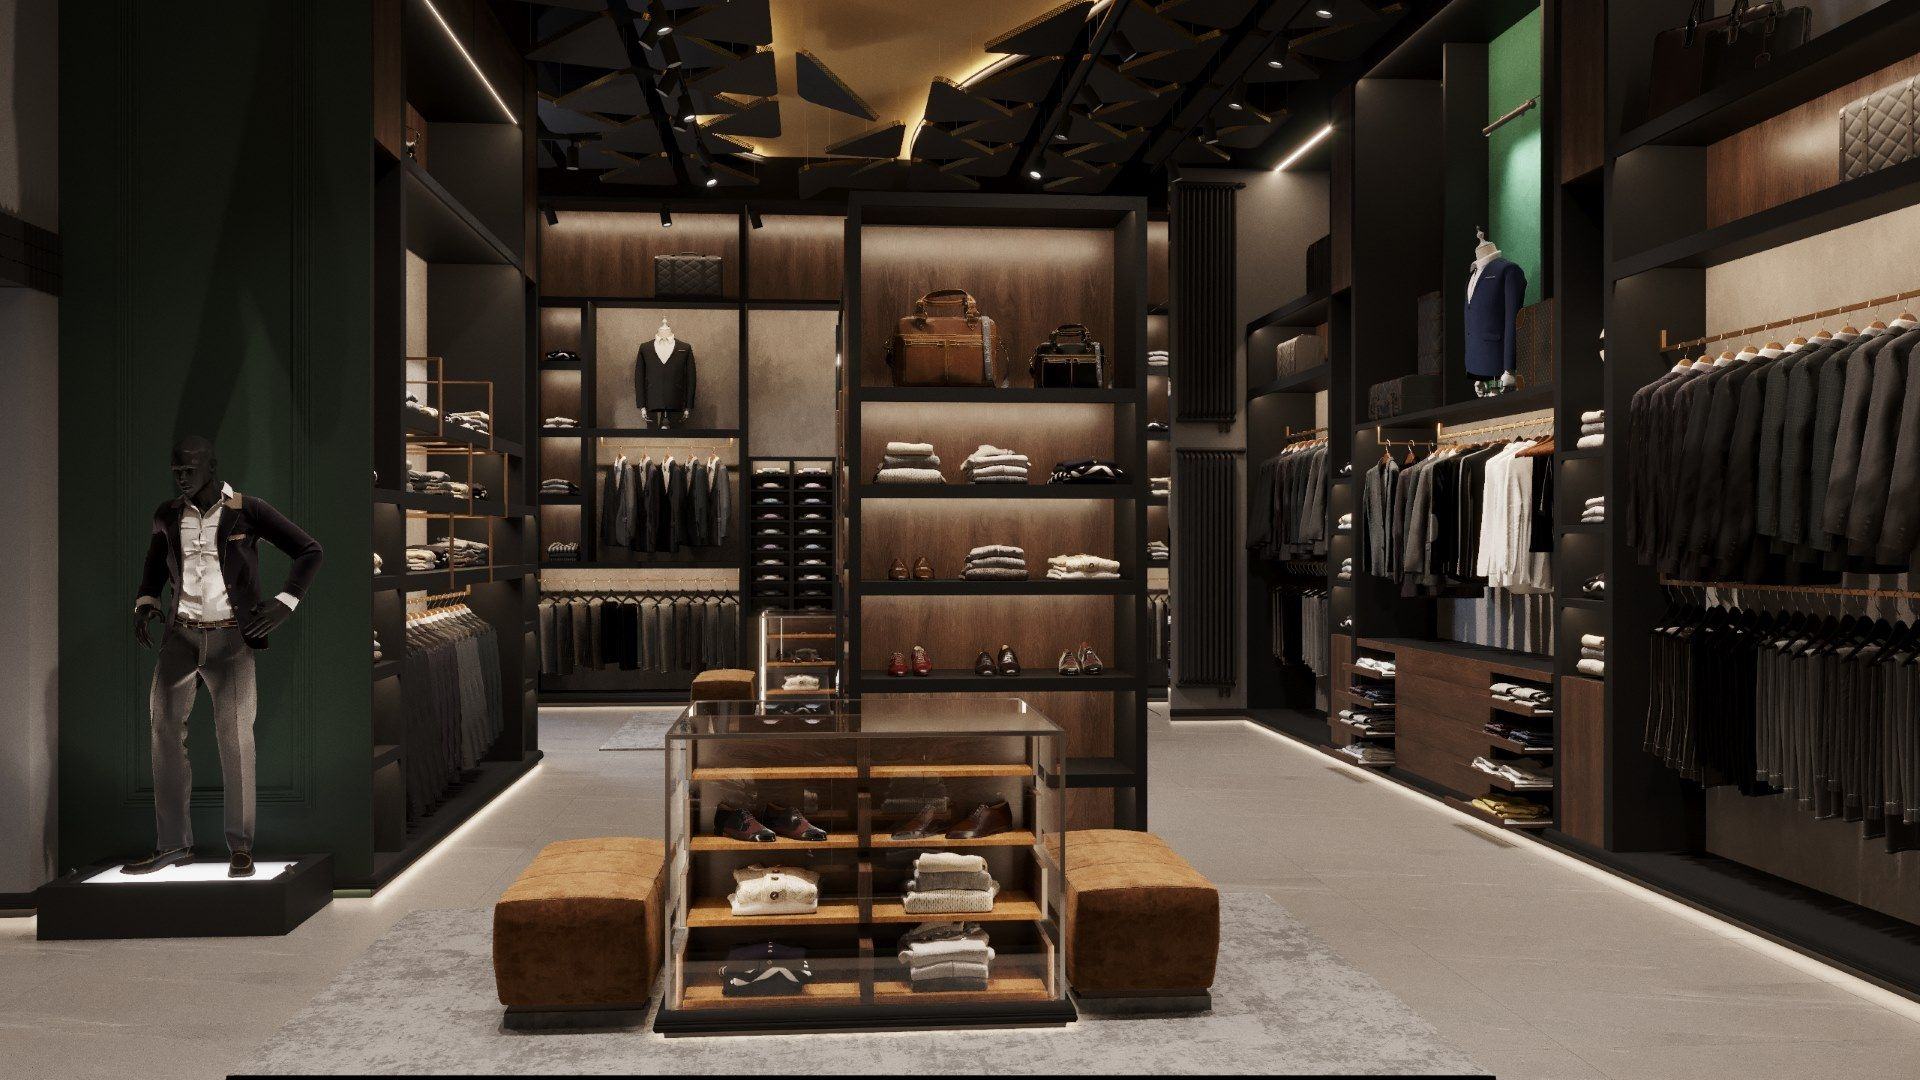 Boutique download free wallpaper image search